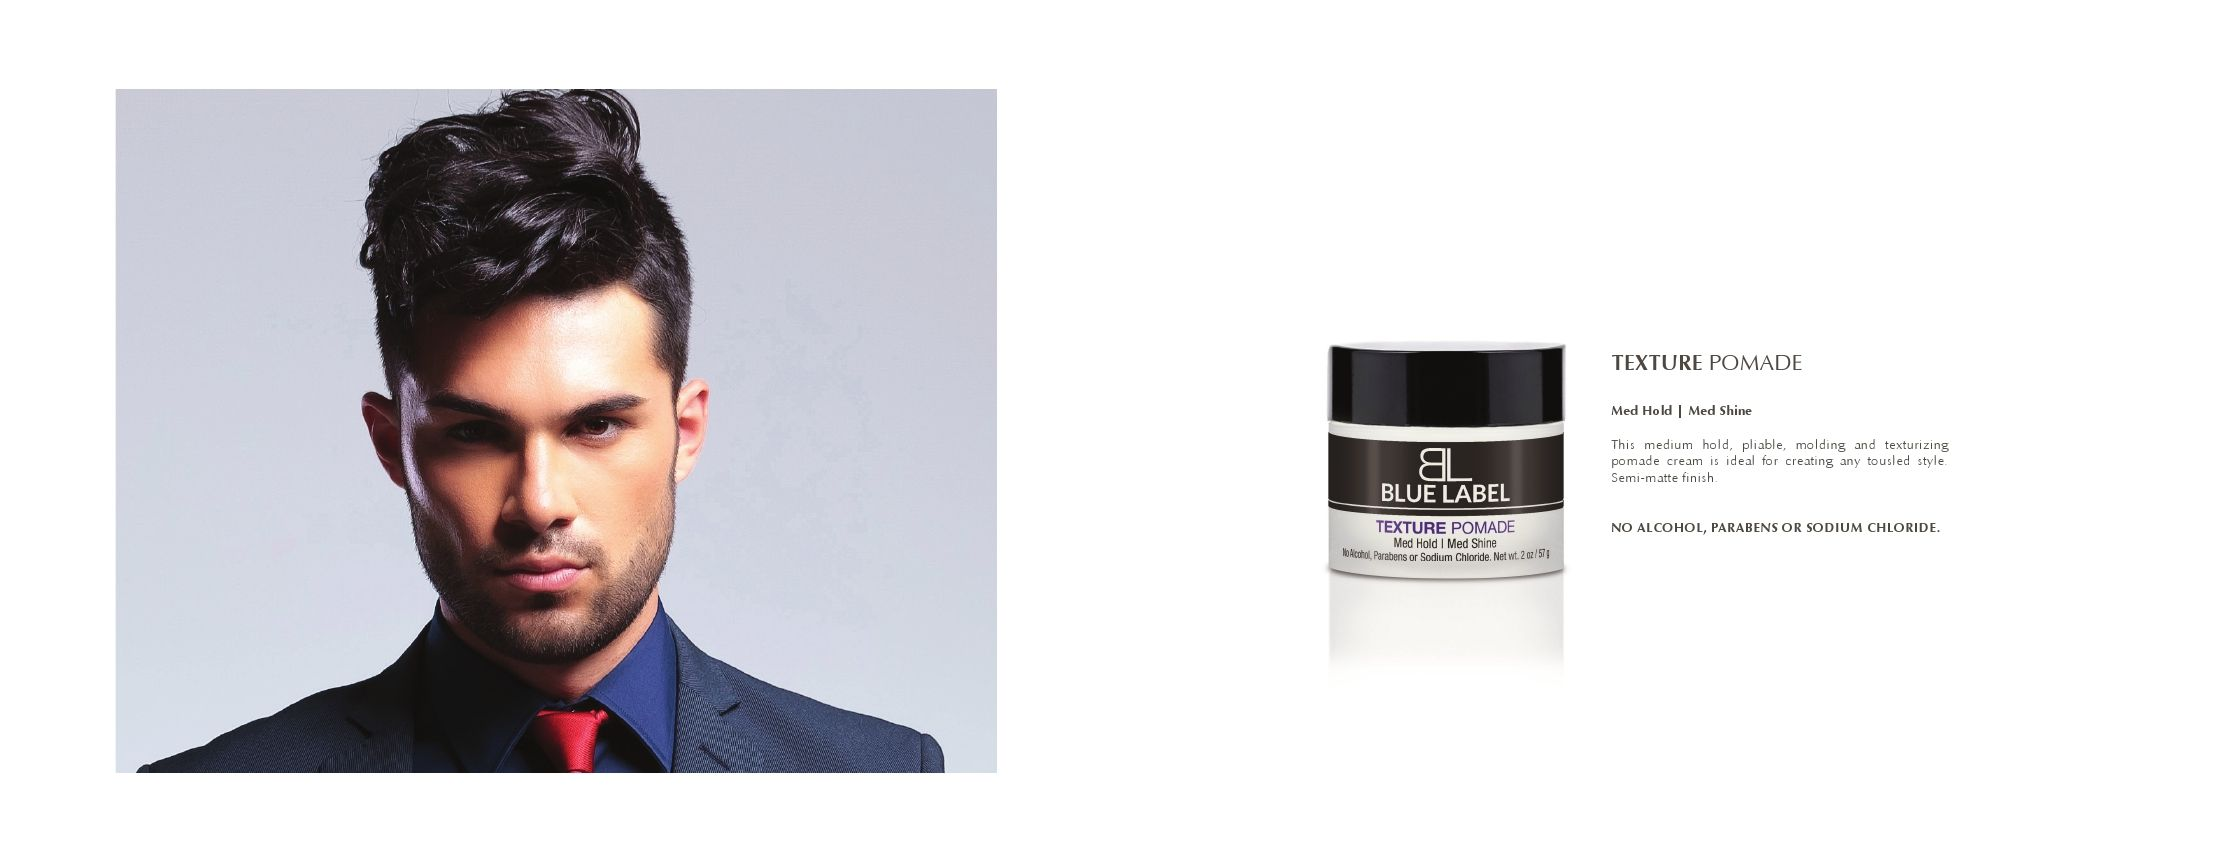 texture pomade men's hair products Mens pomade, Mens